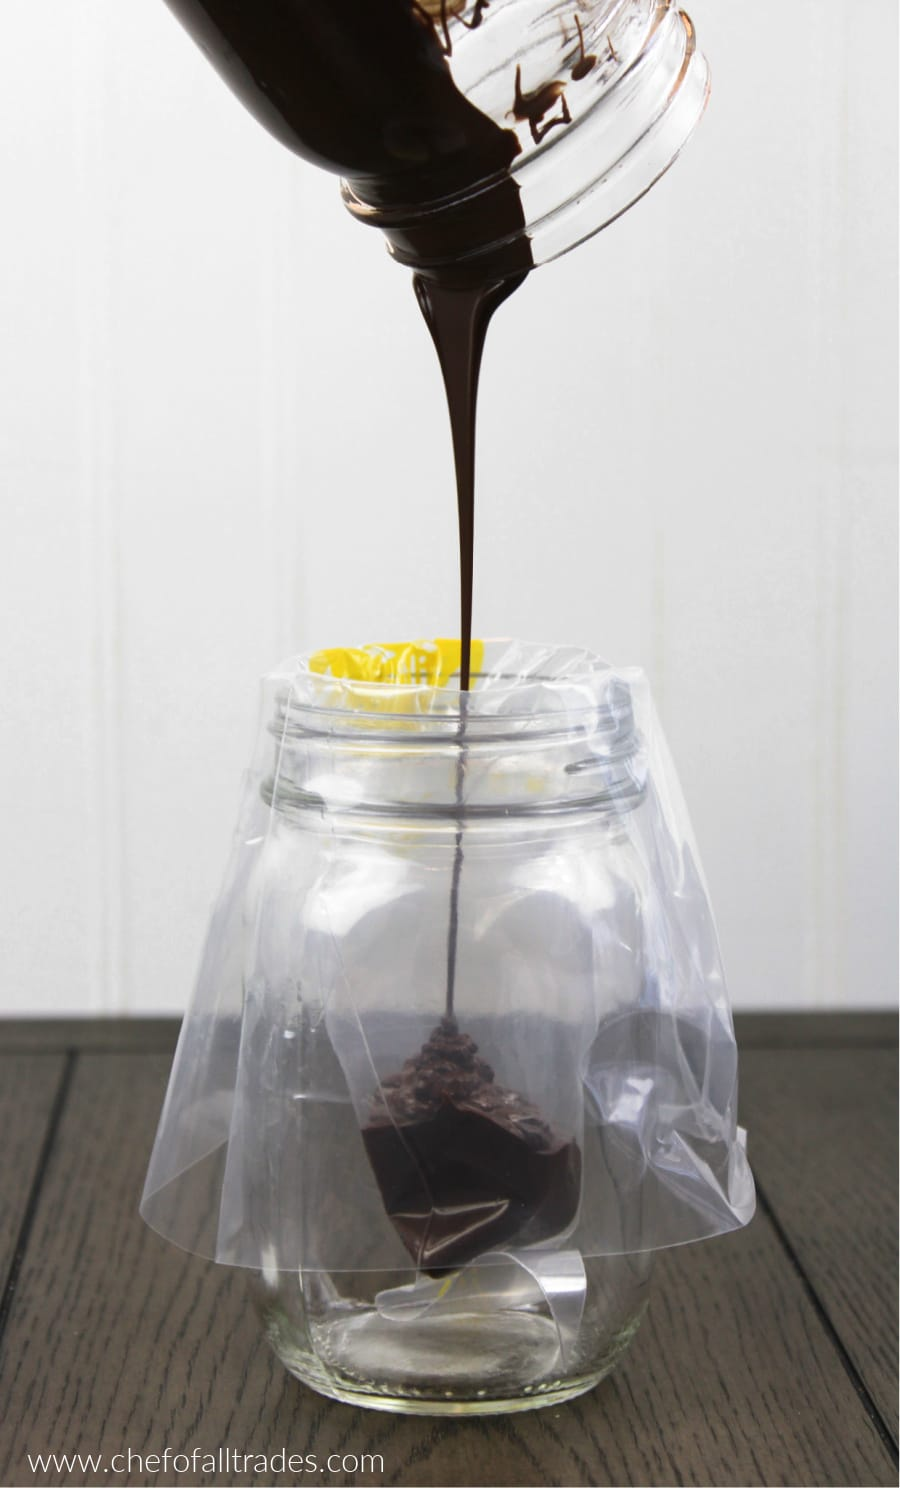 pouring chocolate in a piping bag